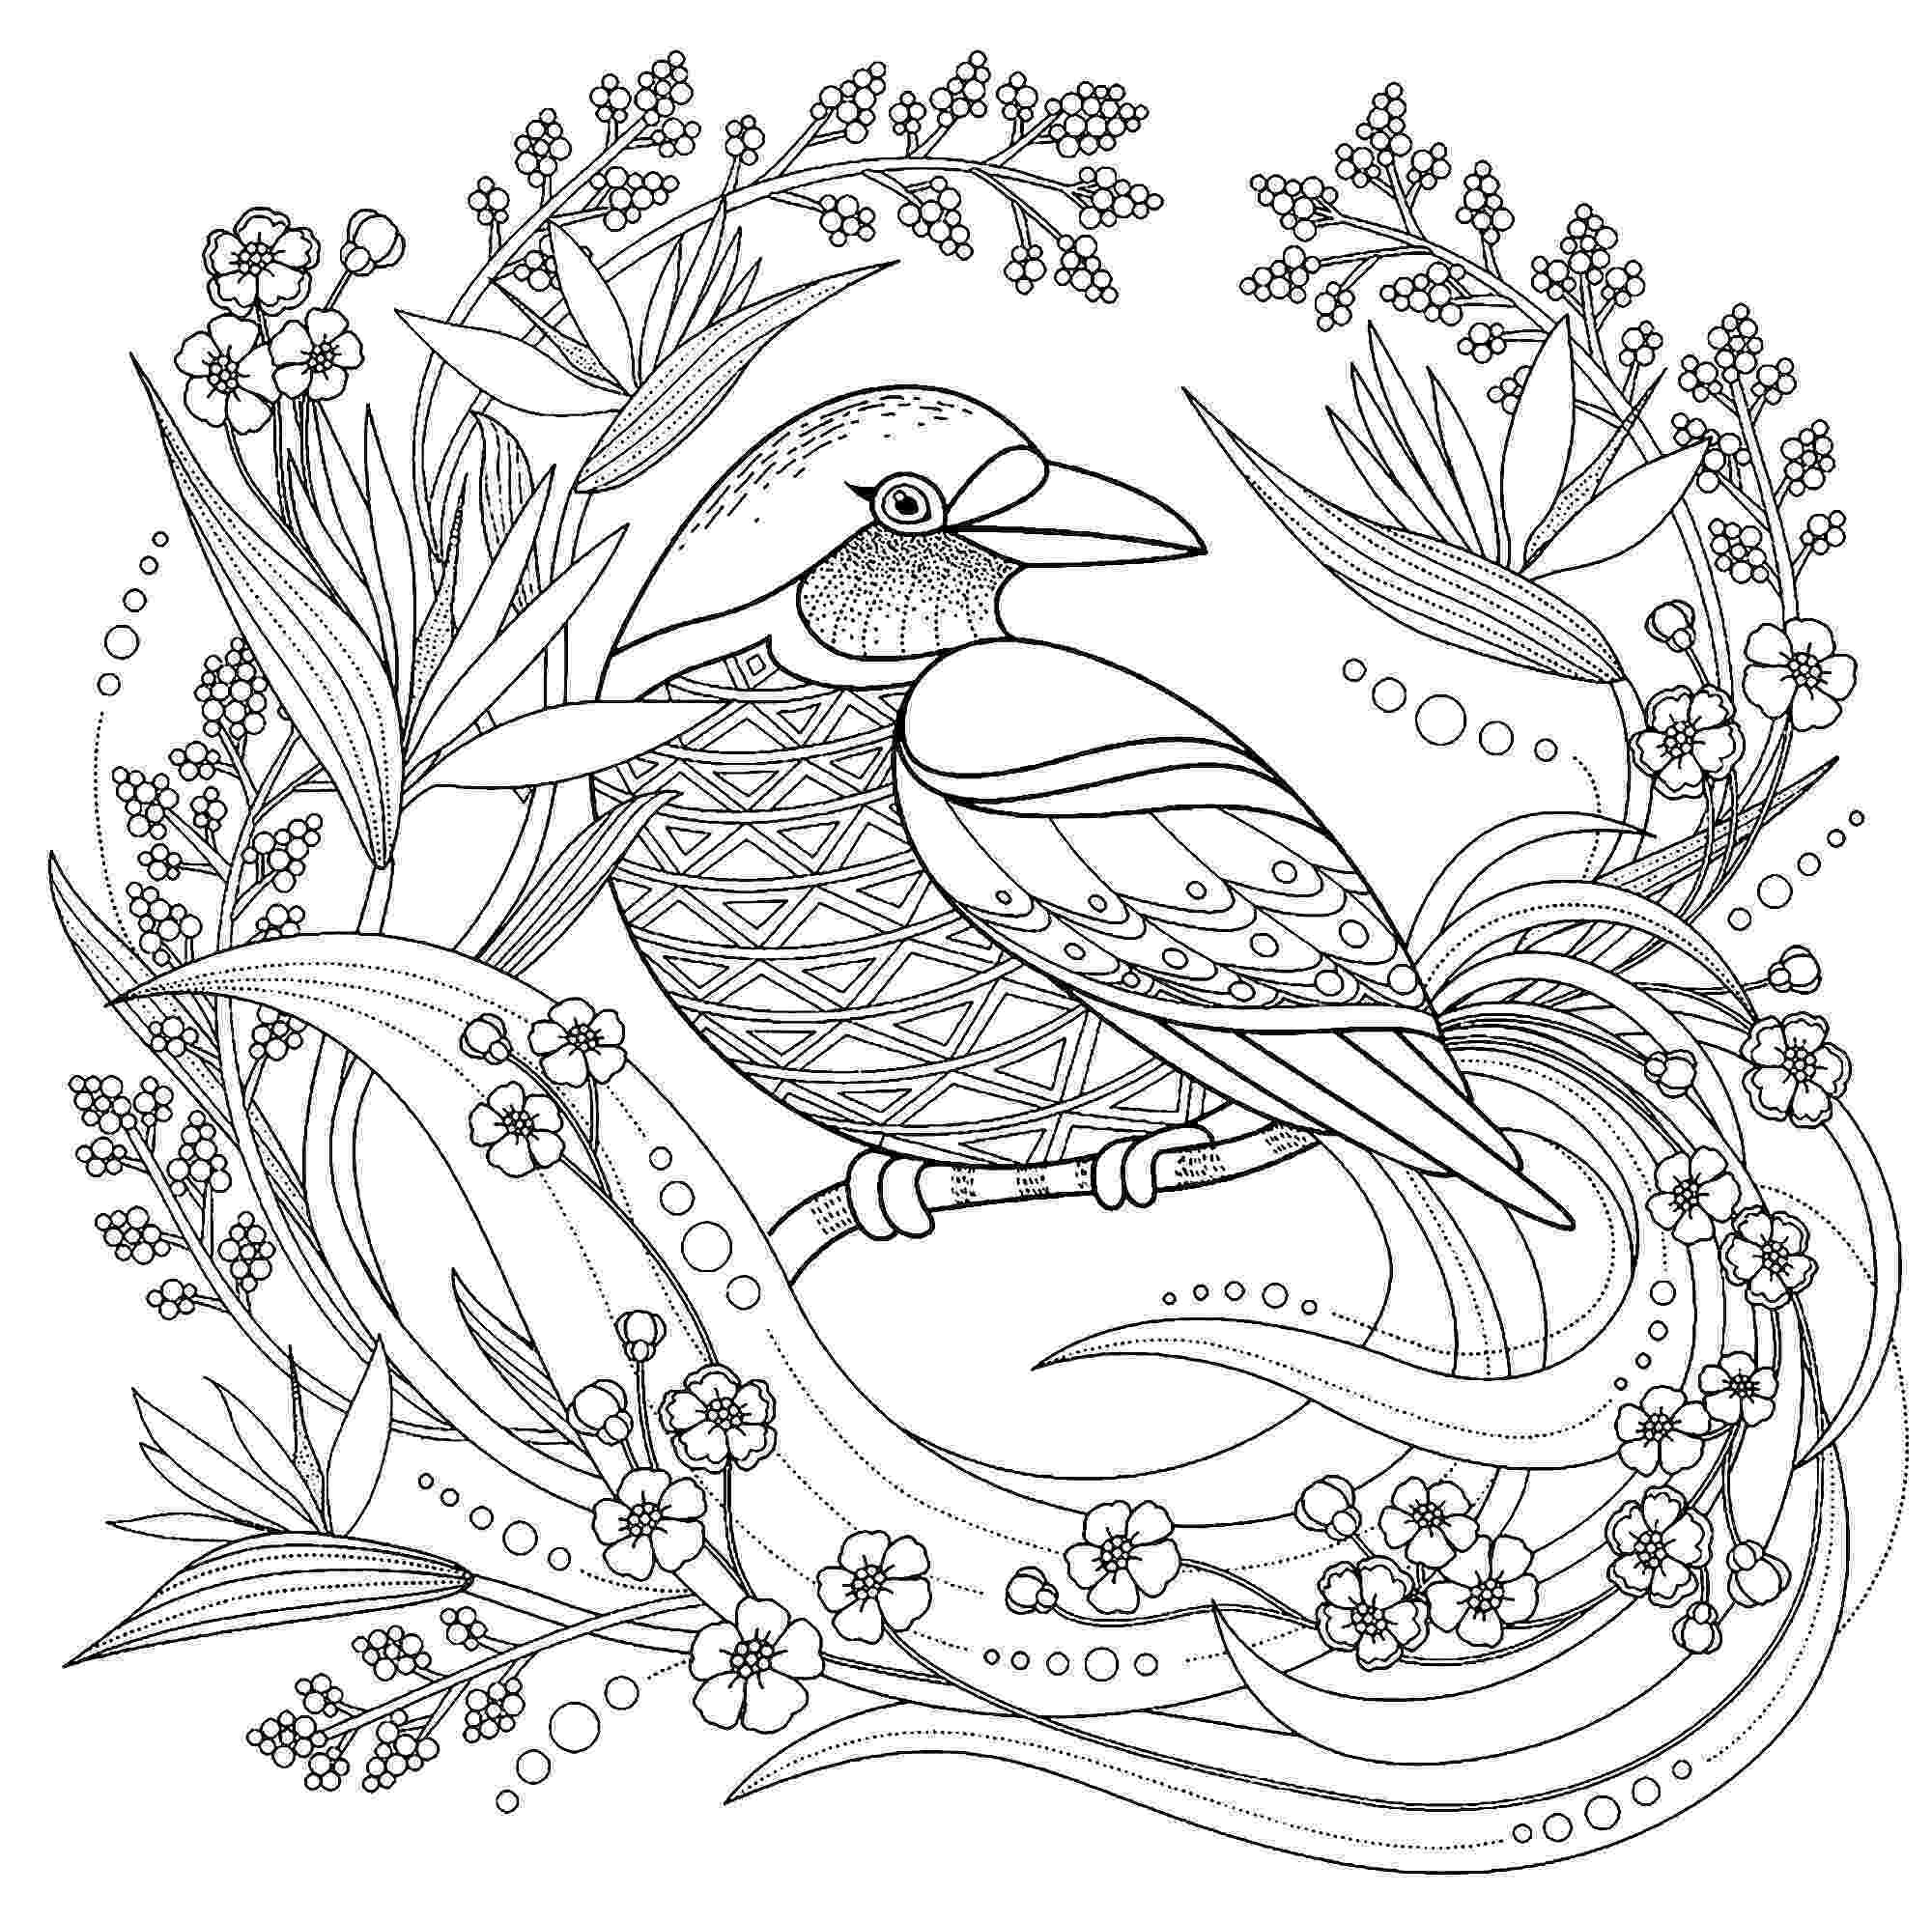 free printable bird coloring pages bird coloring pages coloring printable bird free pages